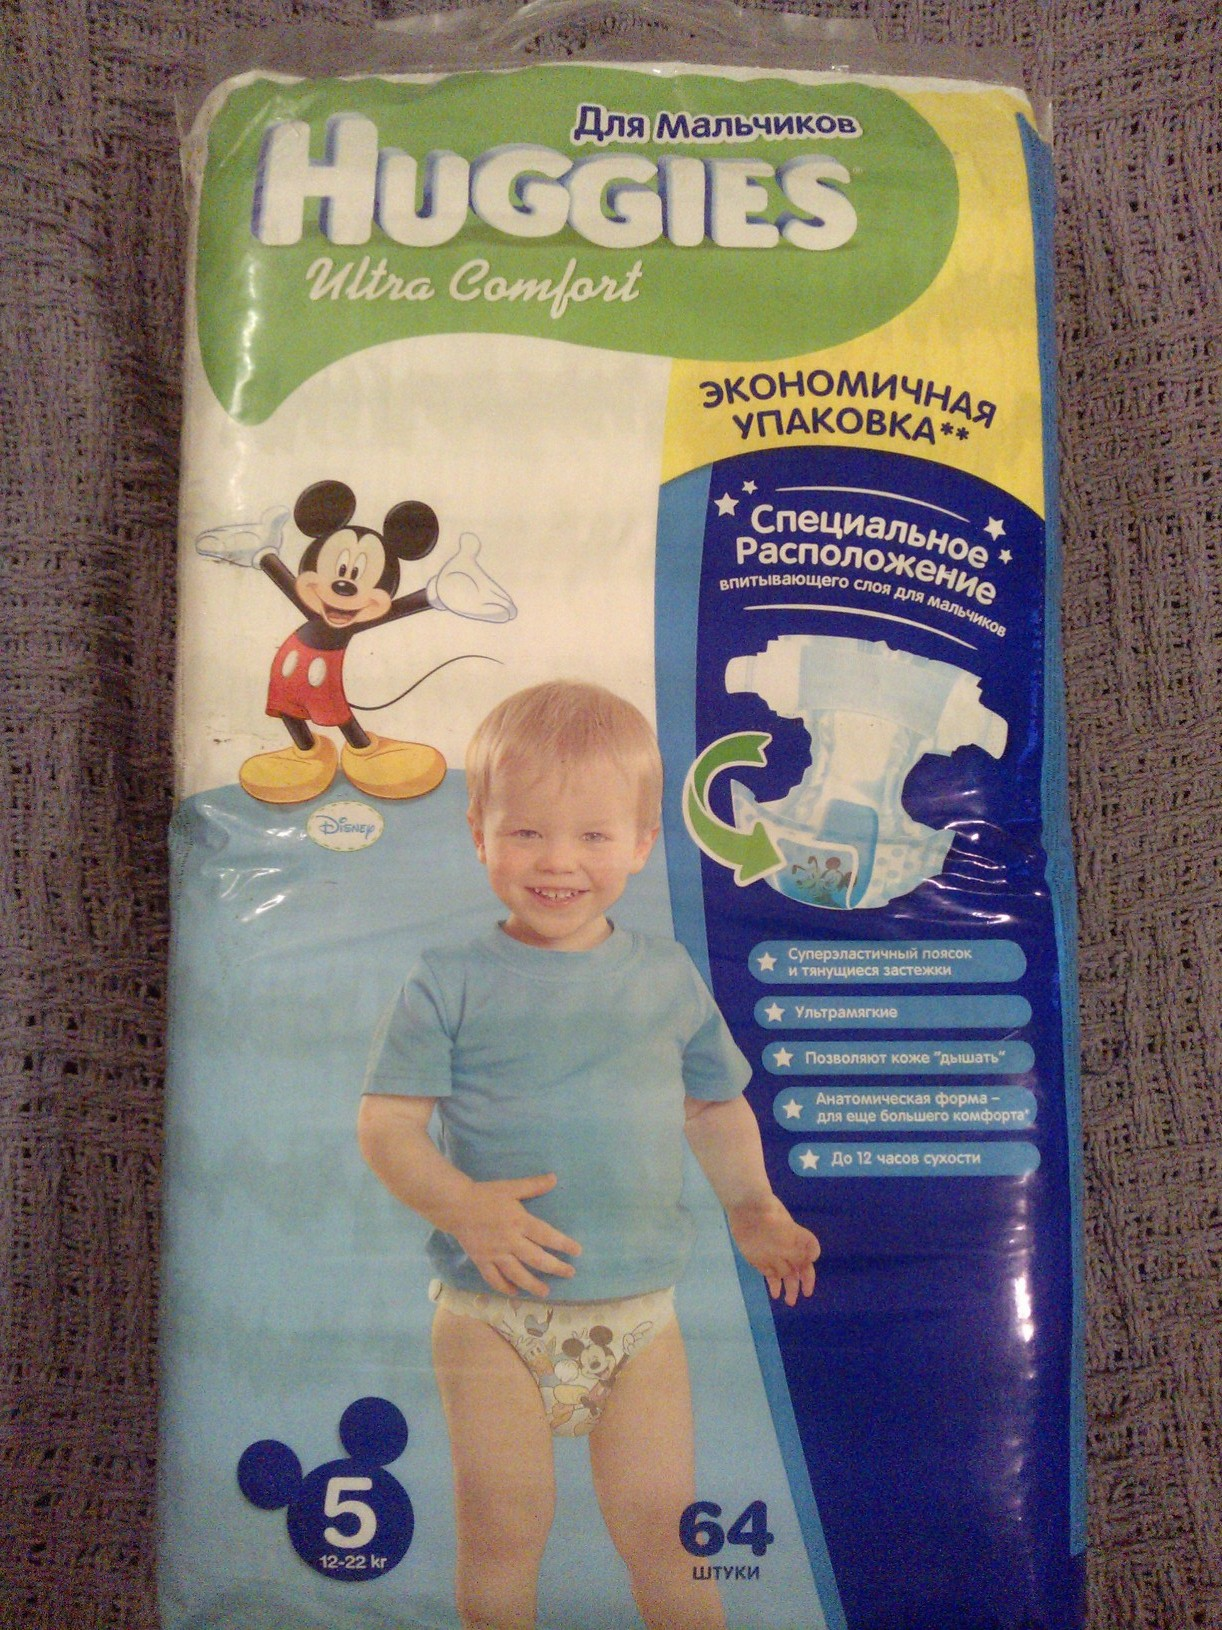 Huggies Ultra comfort   www.u-children.ru